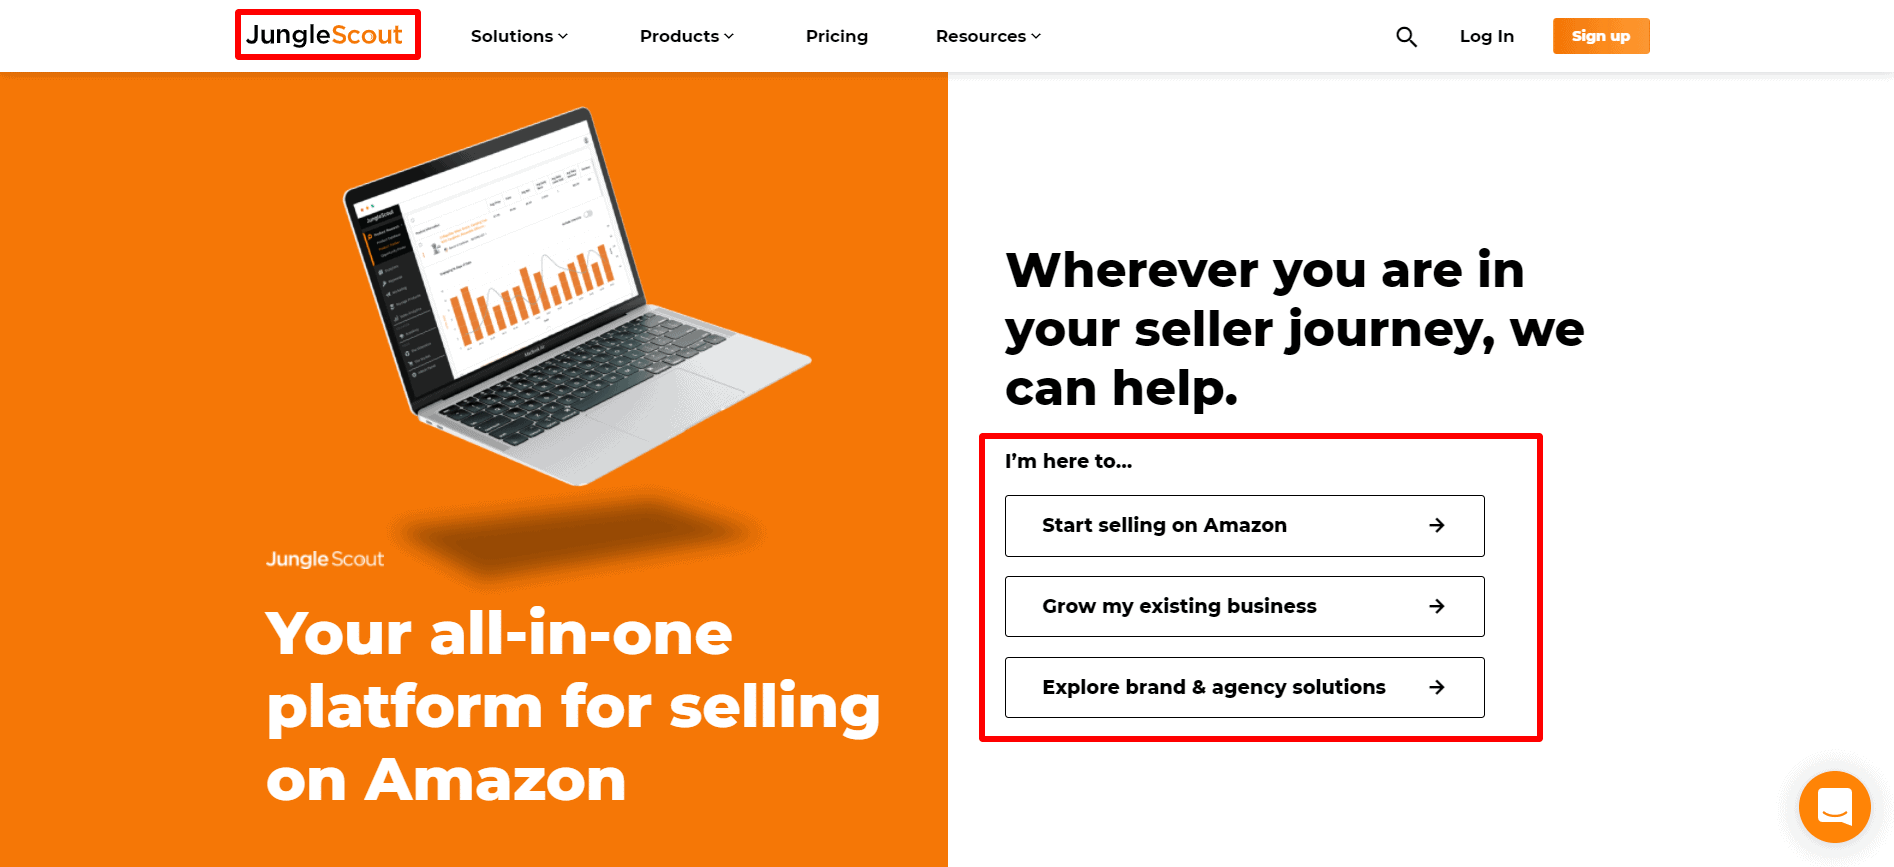 Jungle-Scout-Amazon-Seller-Software-Product-Research-Tools-for-FBA-and-eCommerce-Businesses